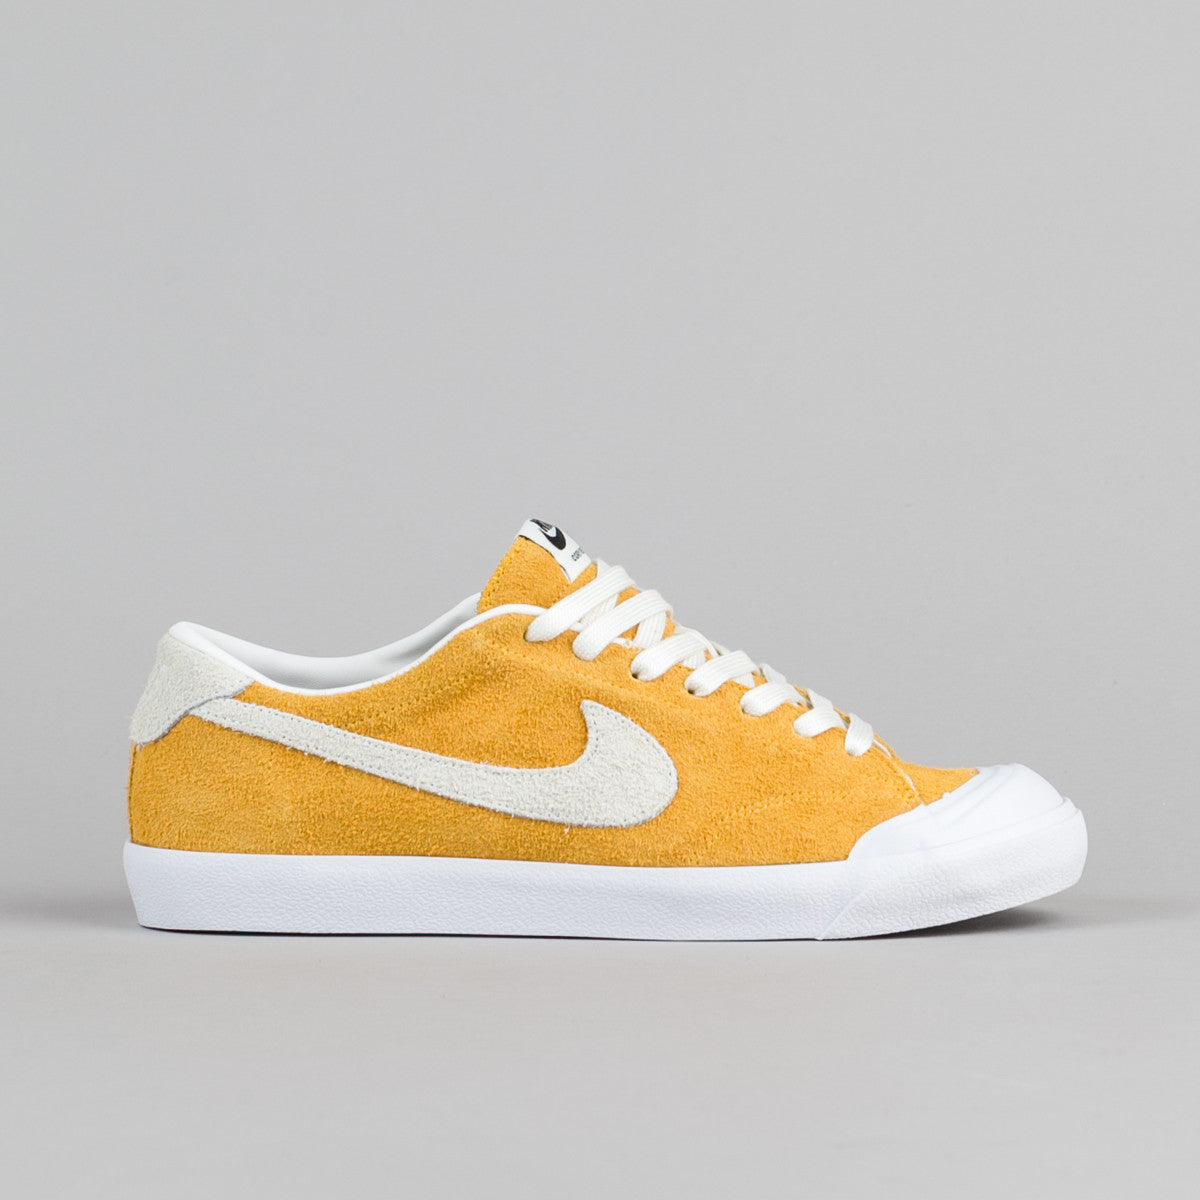 Nike SB Air Zoom All Court CK Shoes